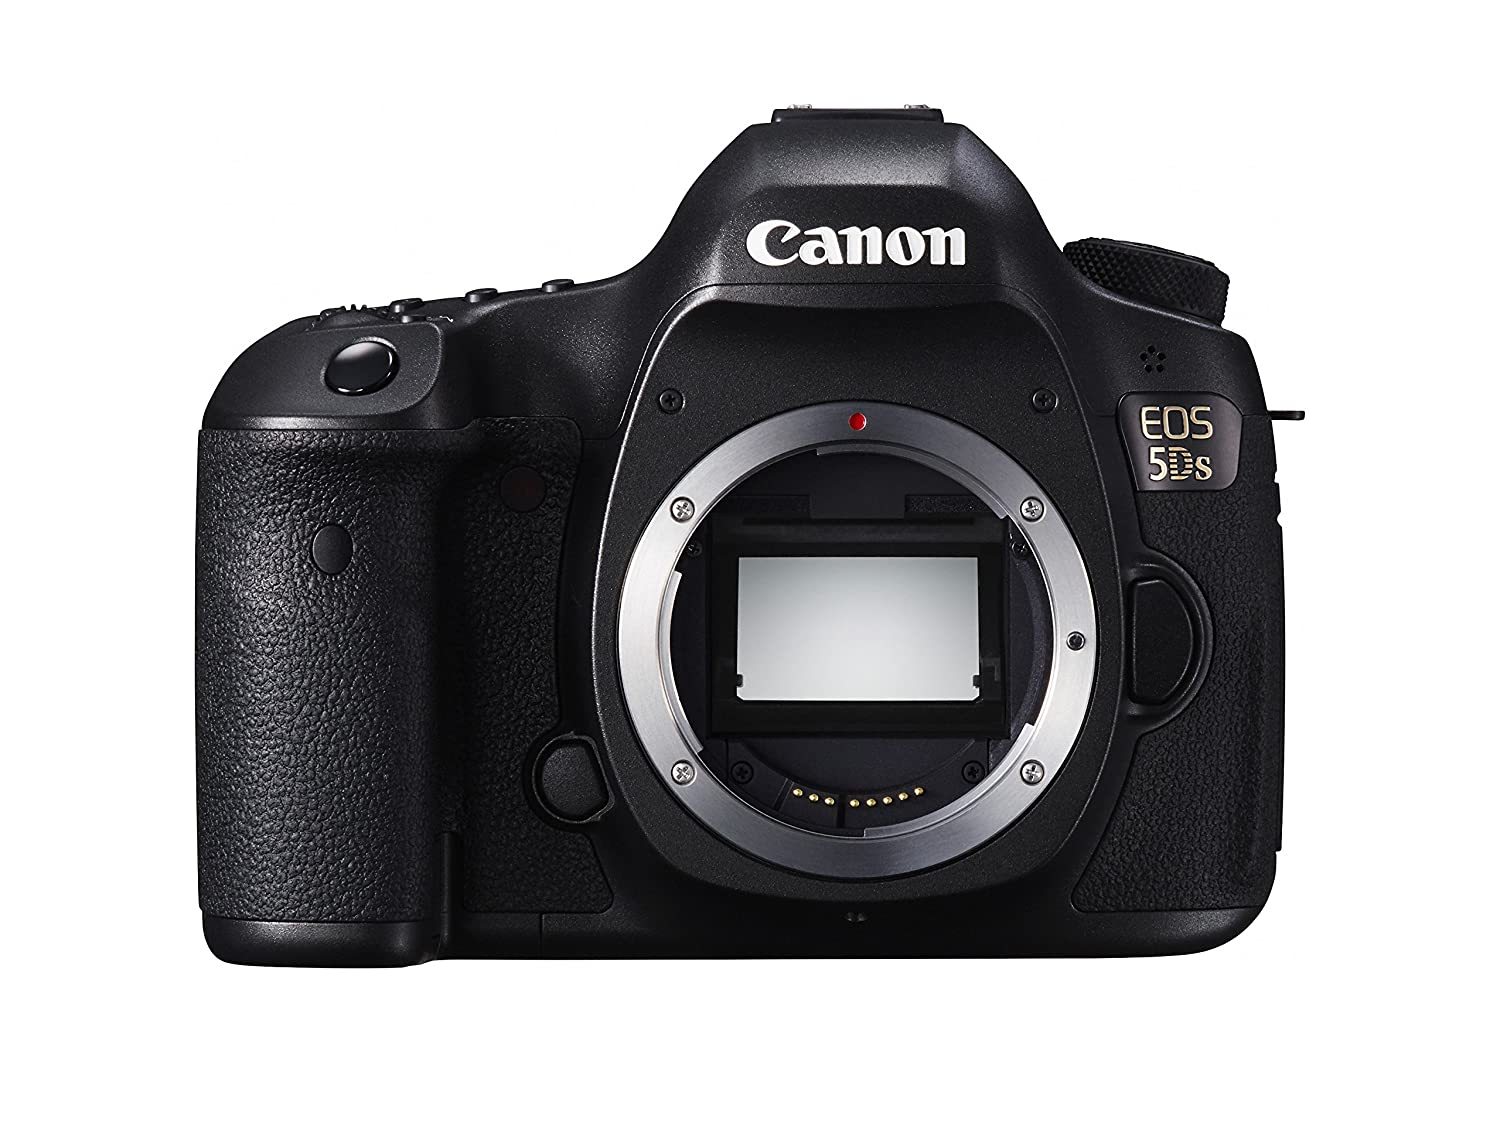 Canon EOS 5DS Review